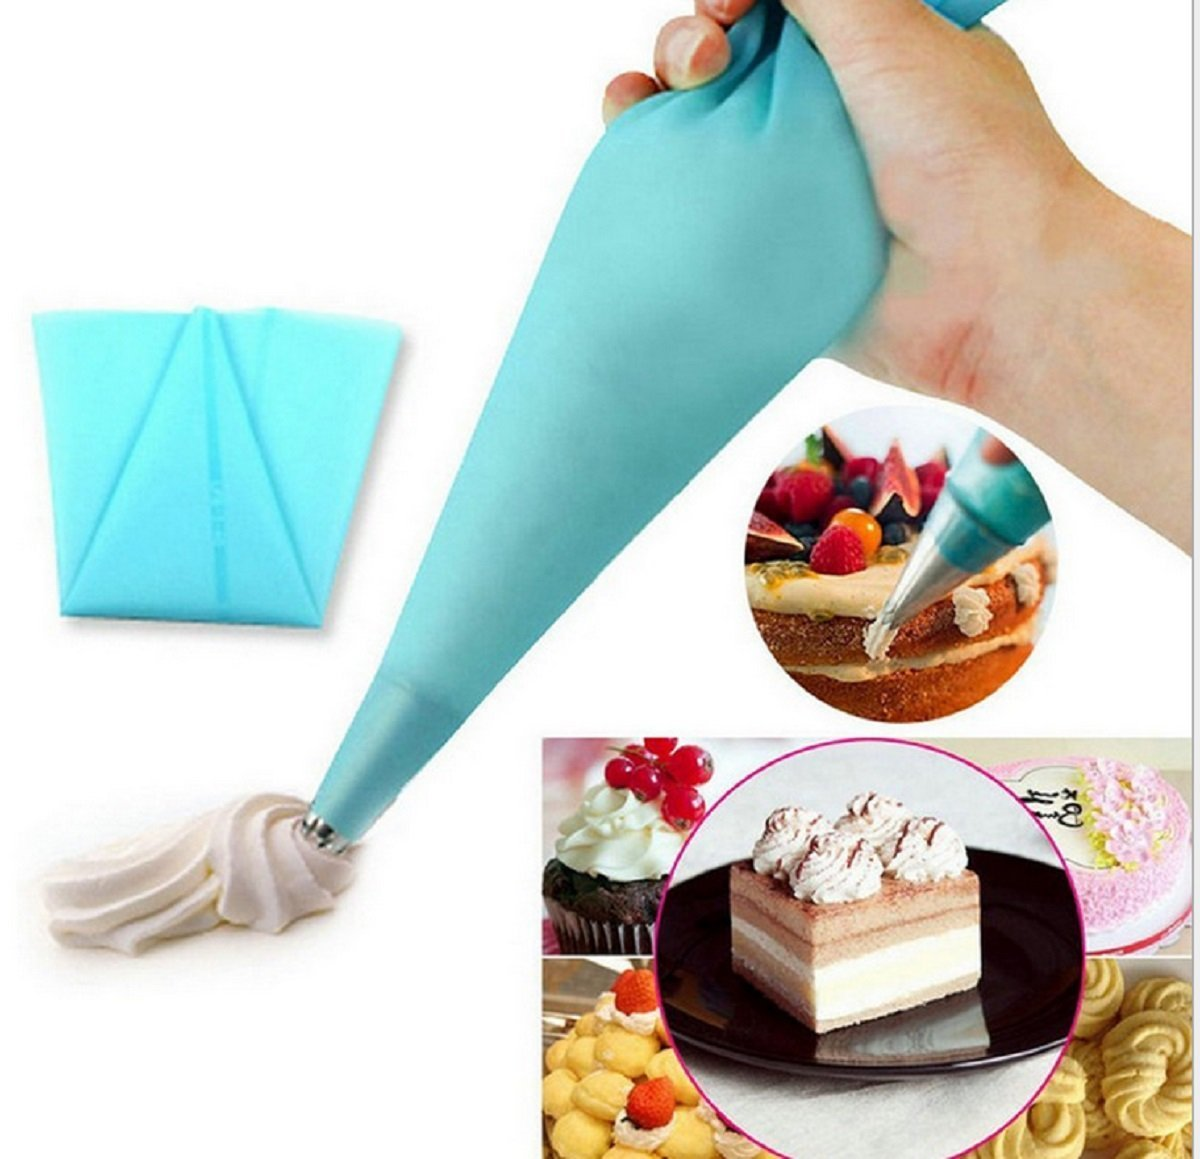 KOOTIPS 4 Sizes S M L XL Reusable Icing Piping Bag Baking Cookie Cake Decorating Bag-Blue color Silicone Pastry Bag 4pcs//set